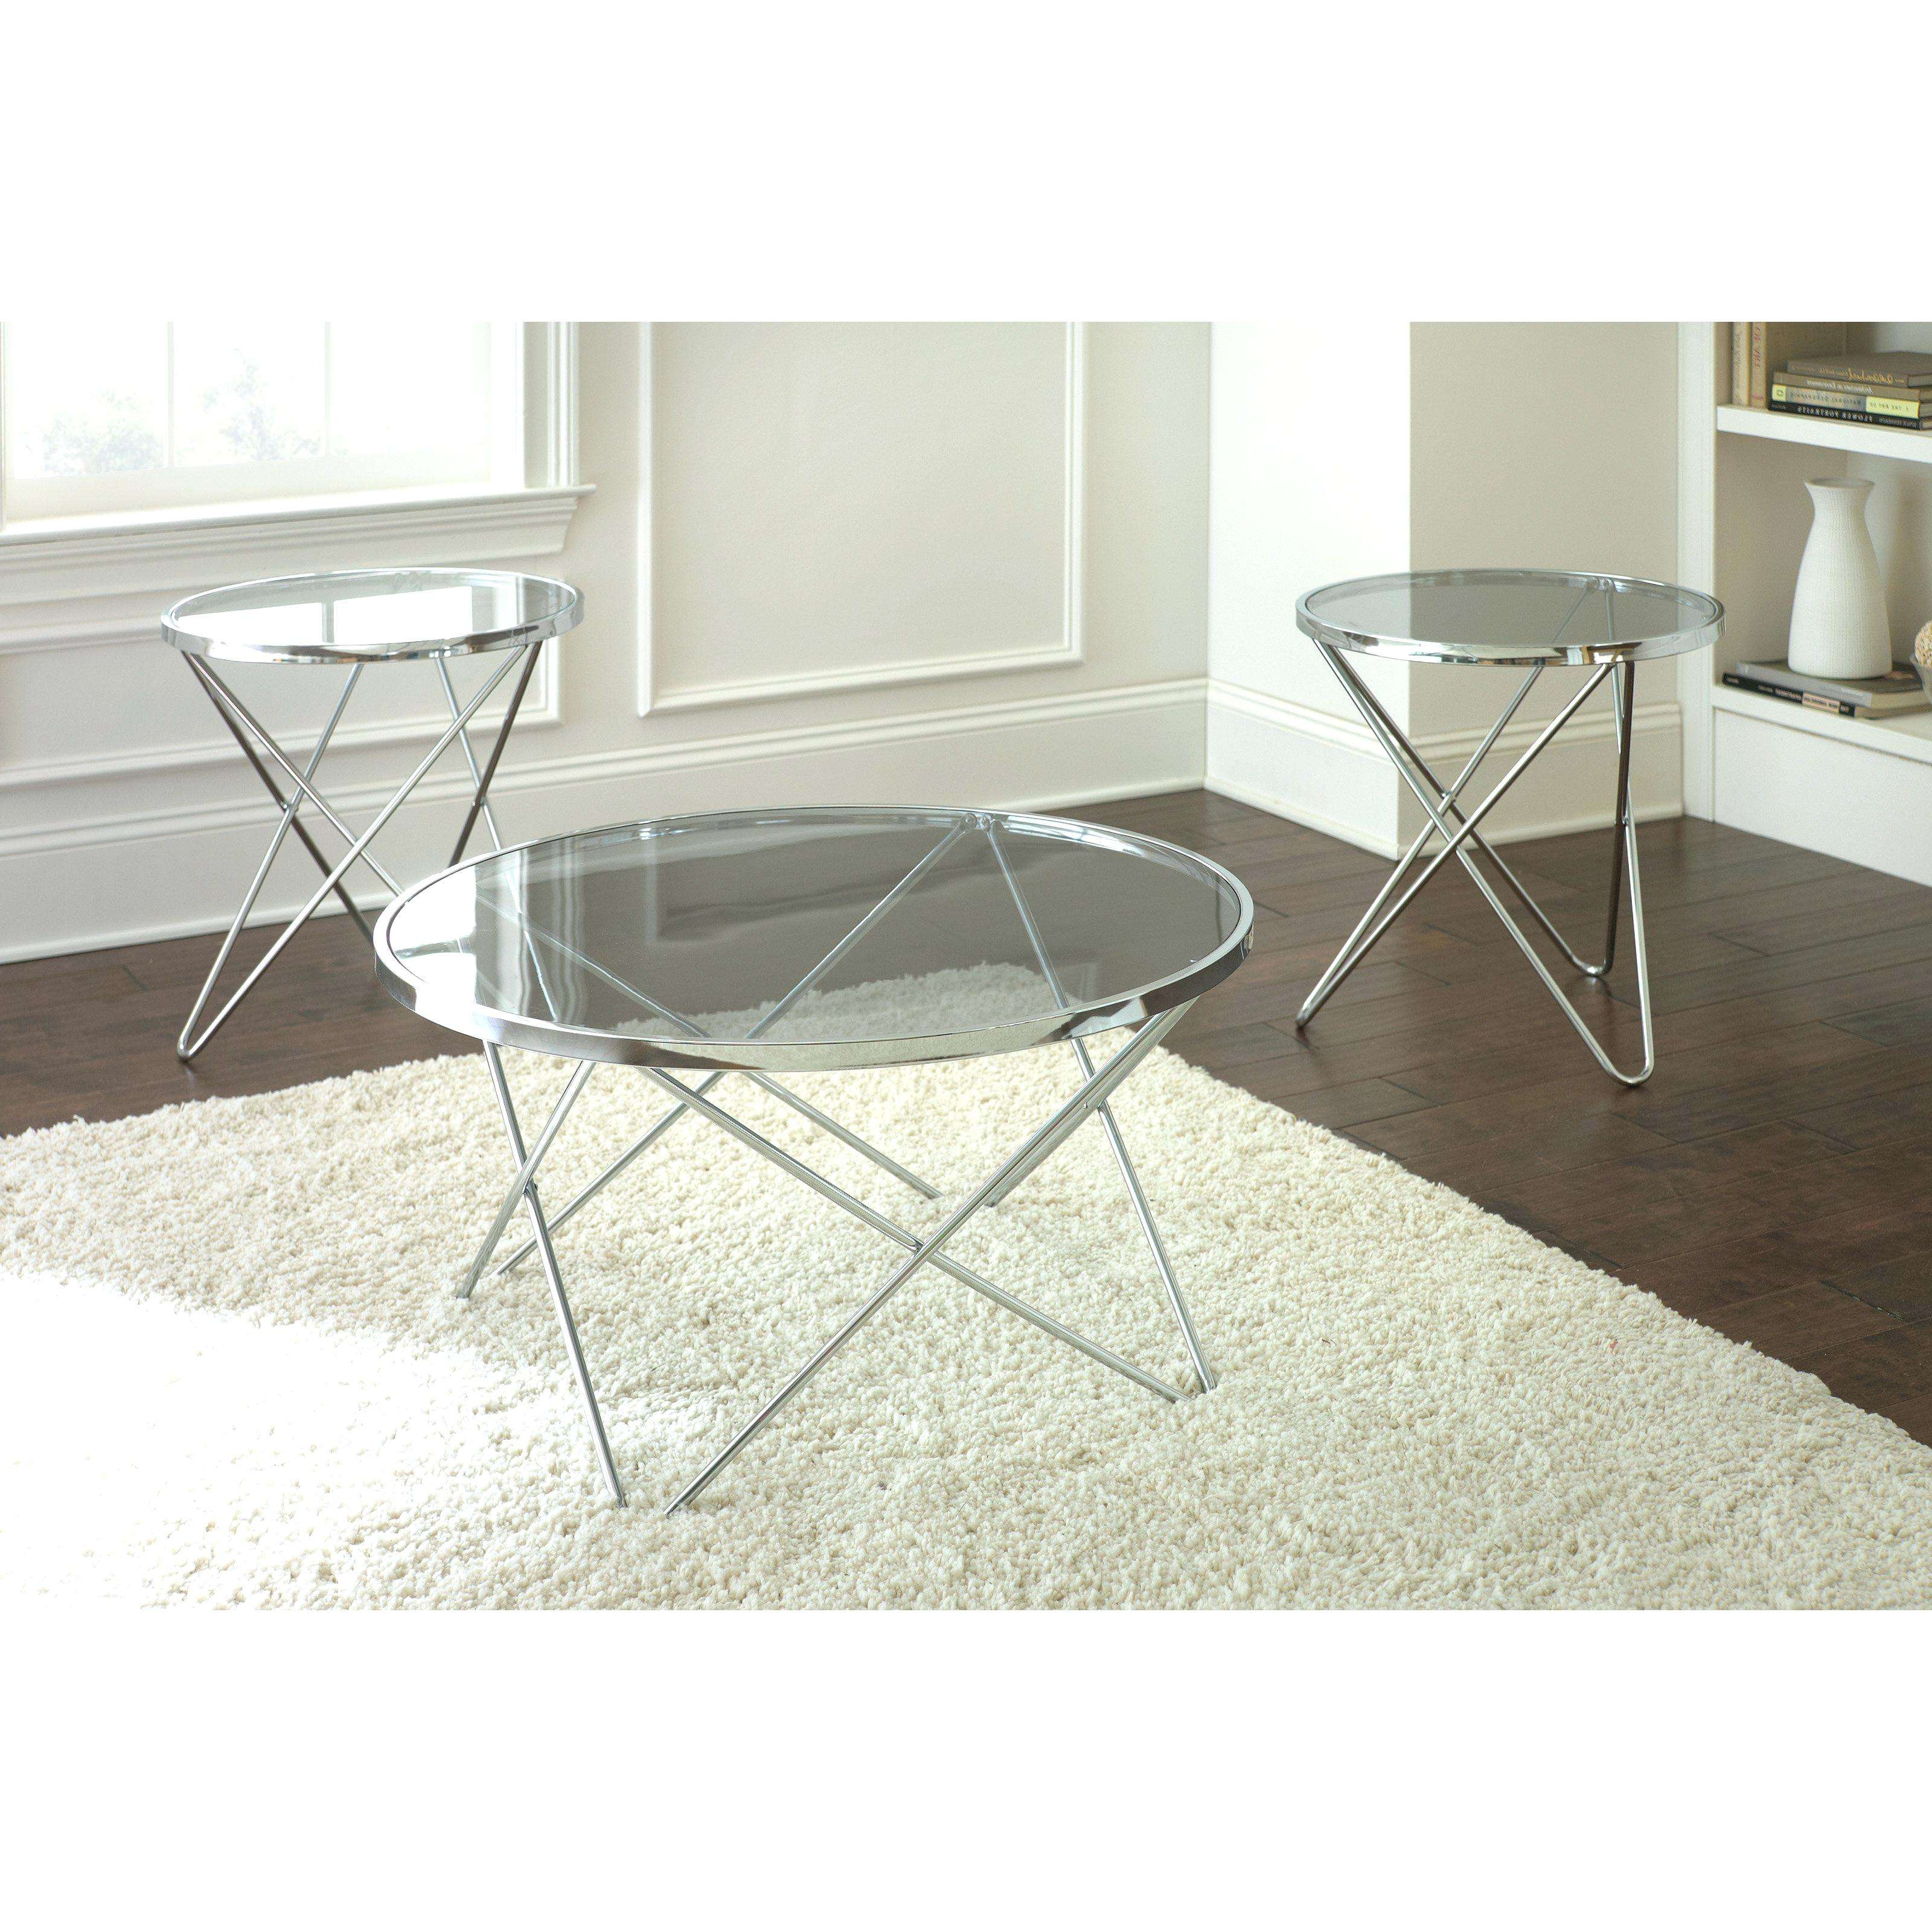 Preferred Wayfair Coffee Table Sets With Coffe Table ~ Coffe Table Wayfair Coffee Sets Akiyo Me Tables From (View 17 of 20)